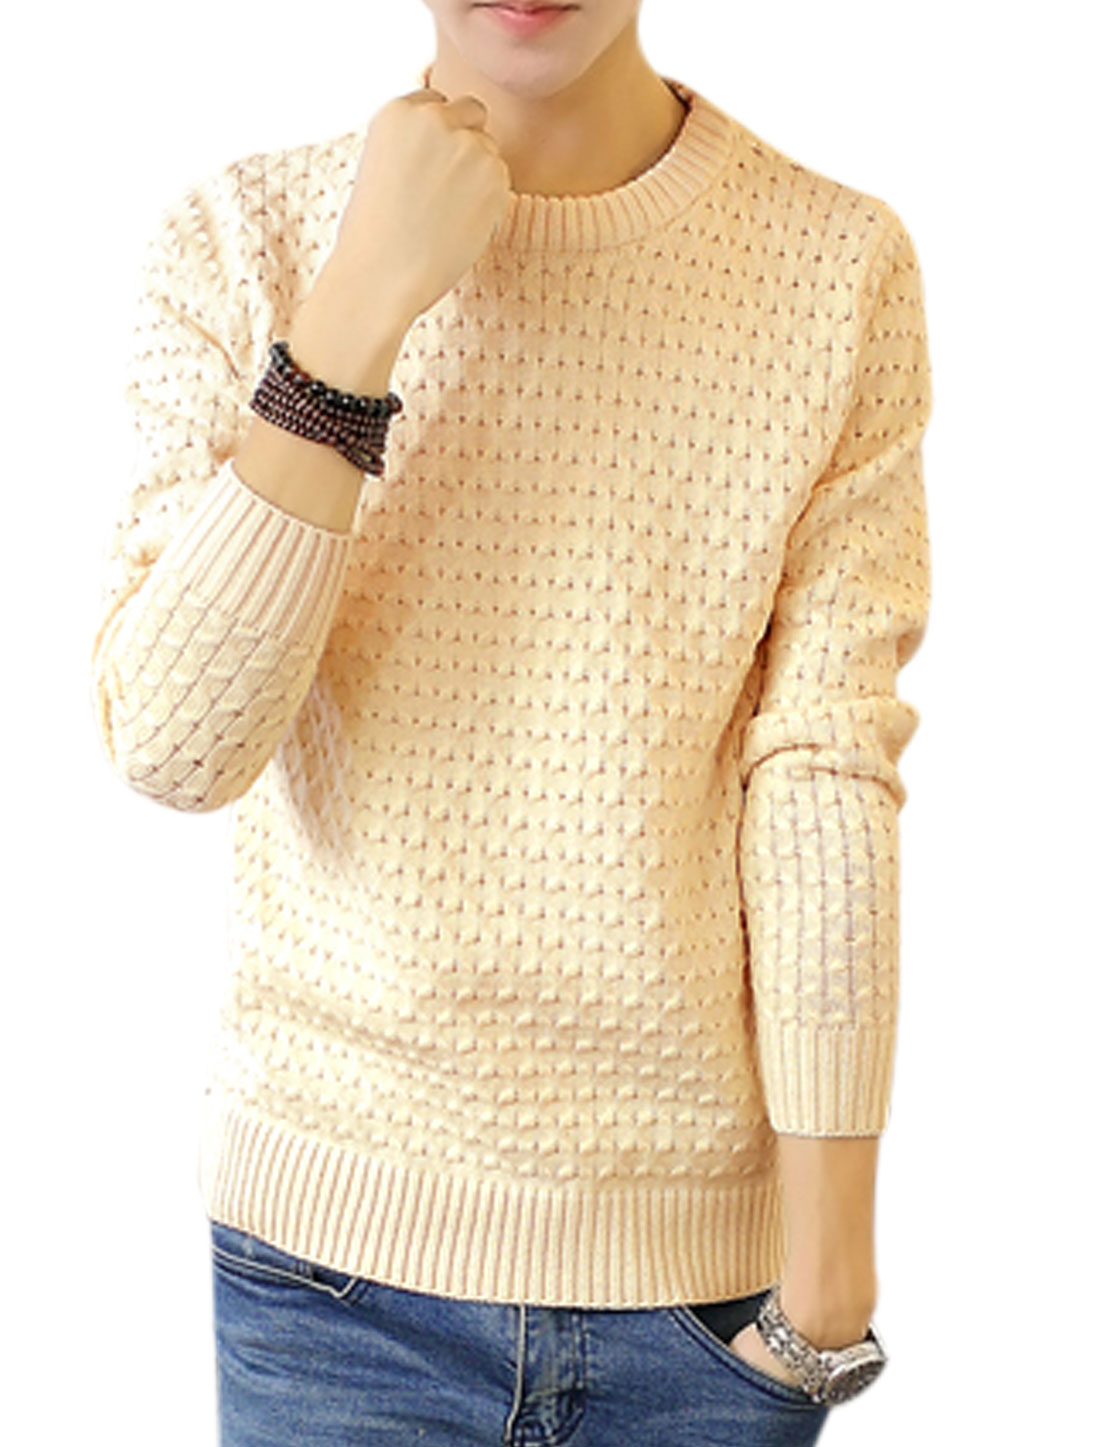 Man Braided Design Long Sleeves Pullover Beige Sweater S